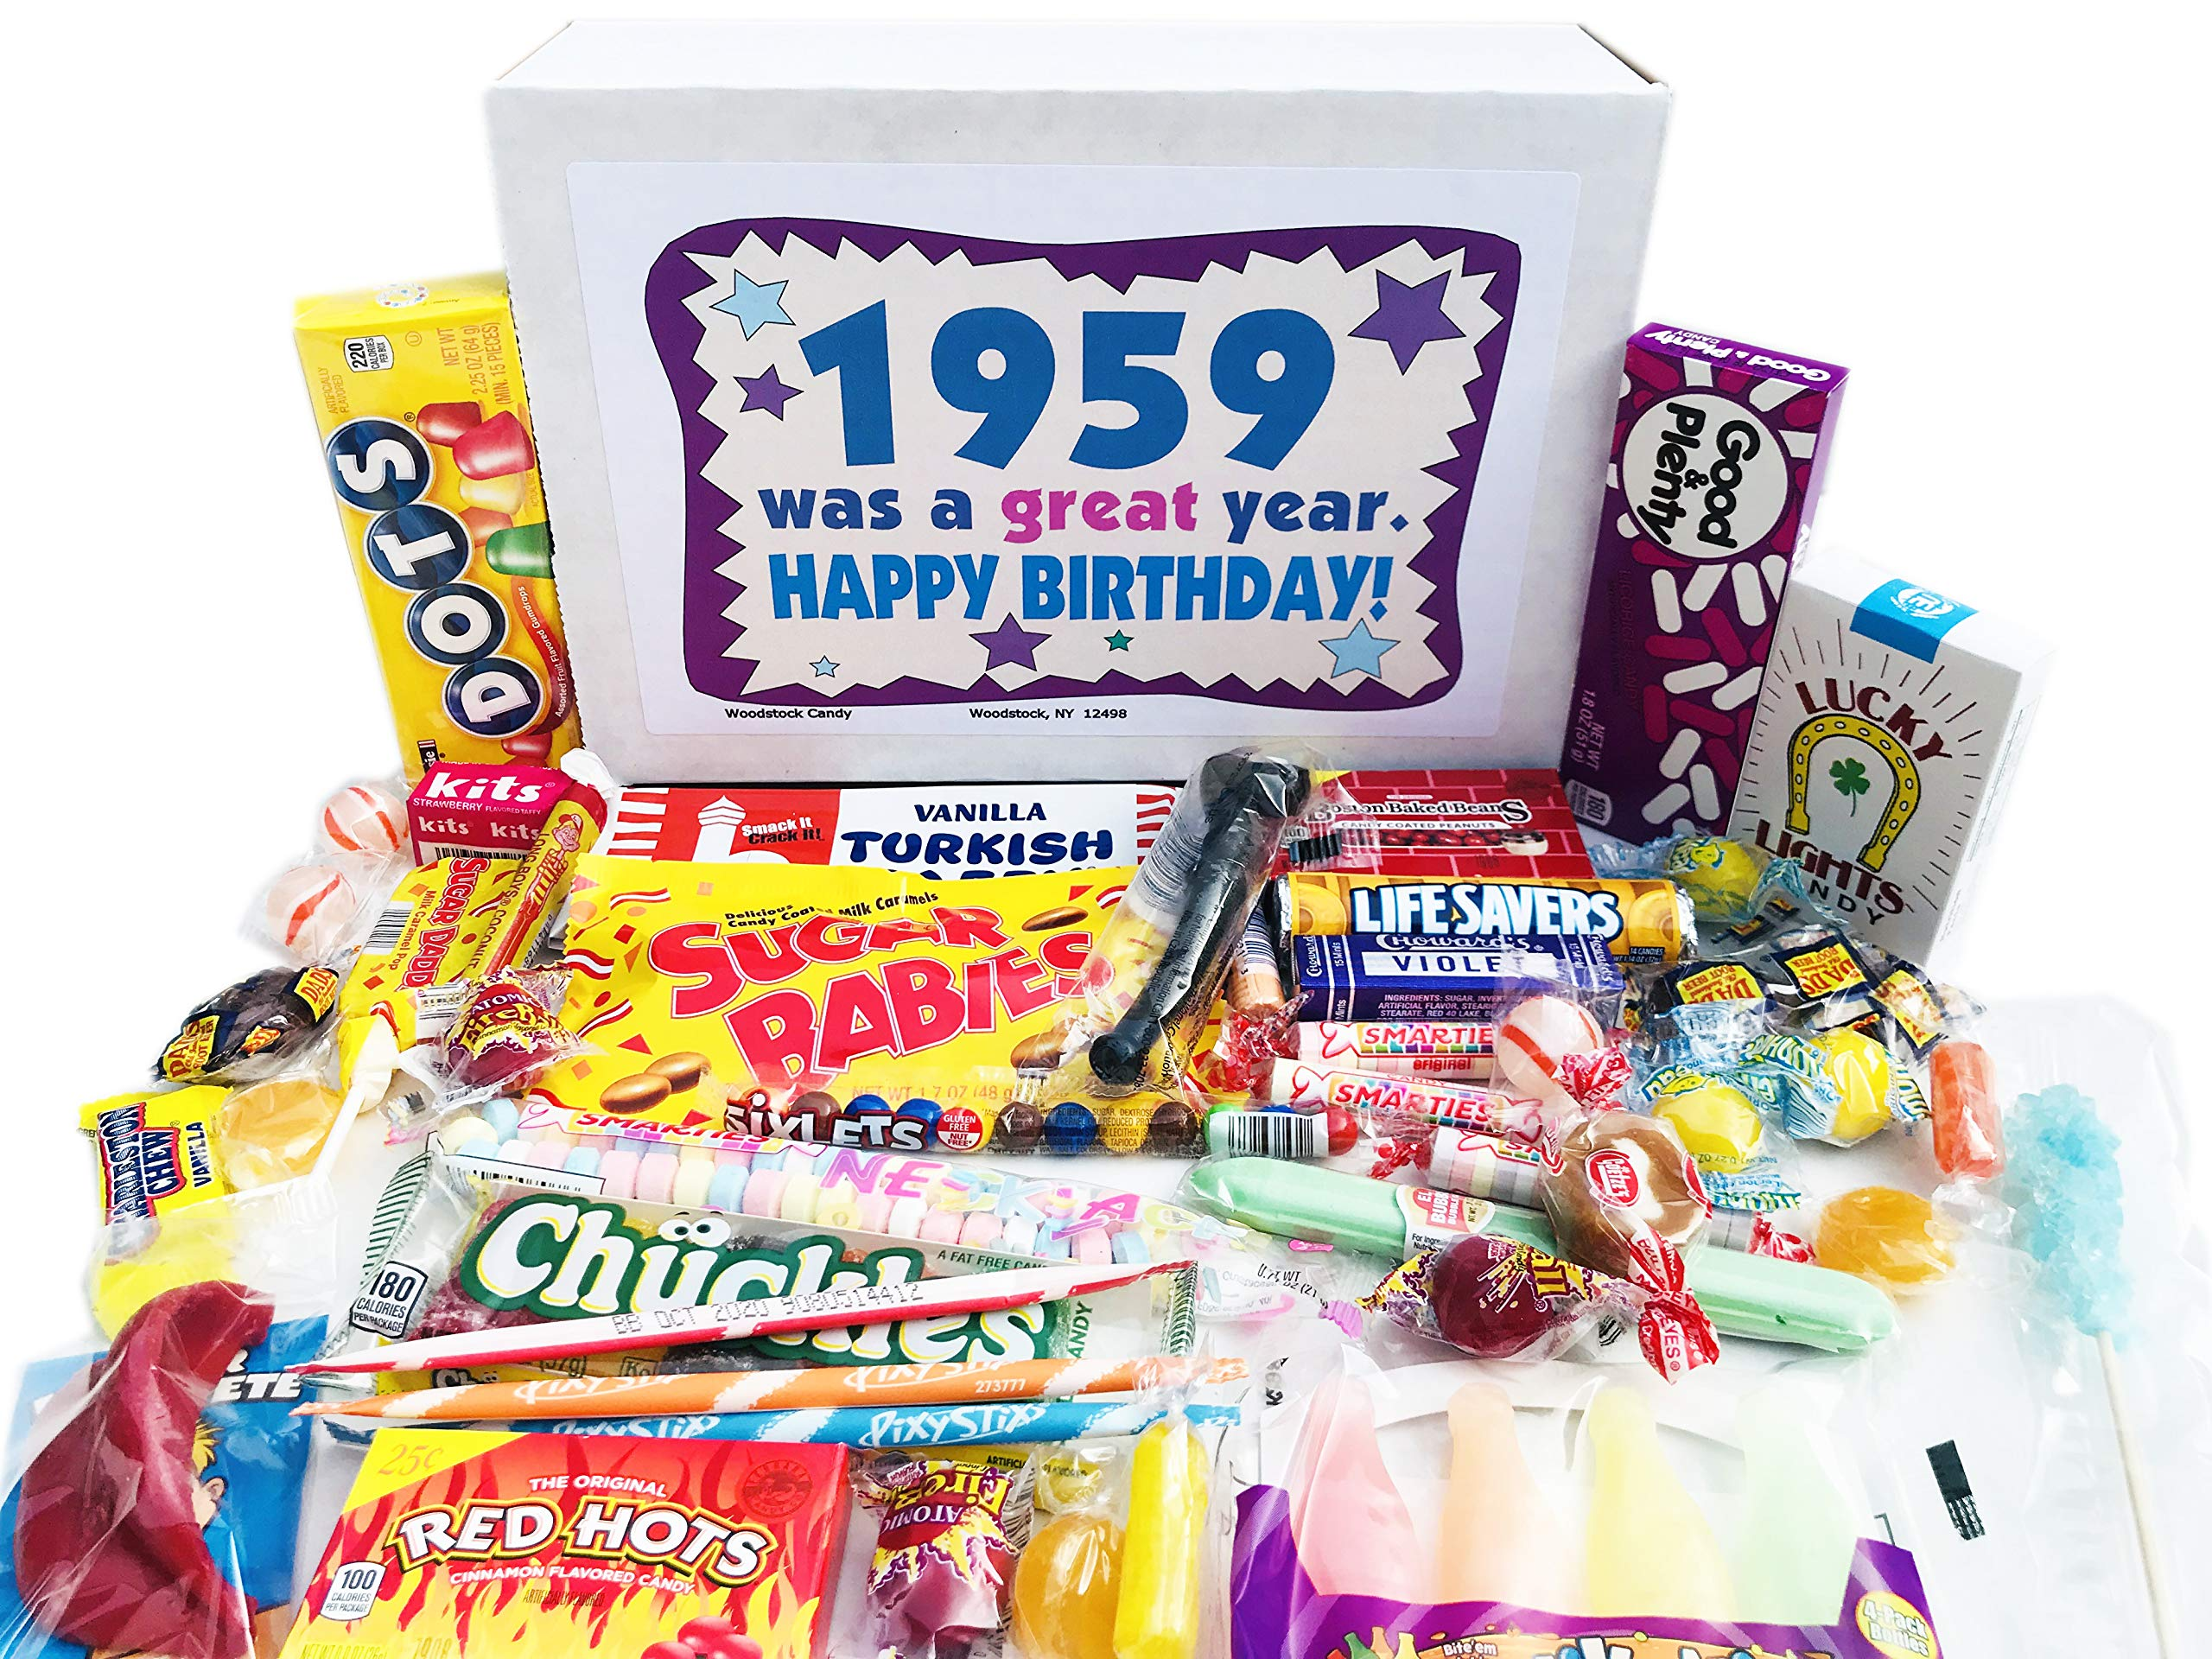 Woodstock Candy ~ 60th Birthday Gift Ideas Retro Vintage Candy Assortment from Childhood for 60 Year Old Man or Woman Born 1959 Jr by Woodstock Candy